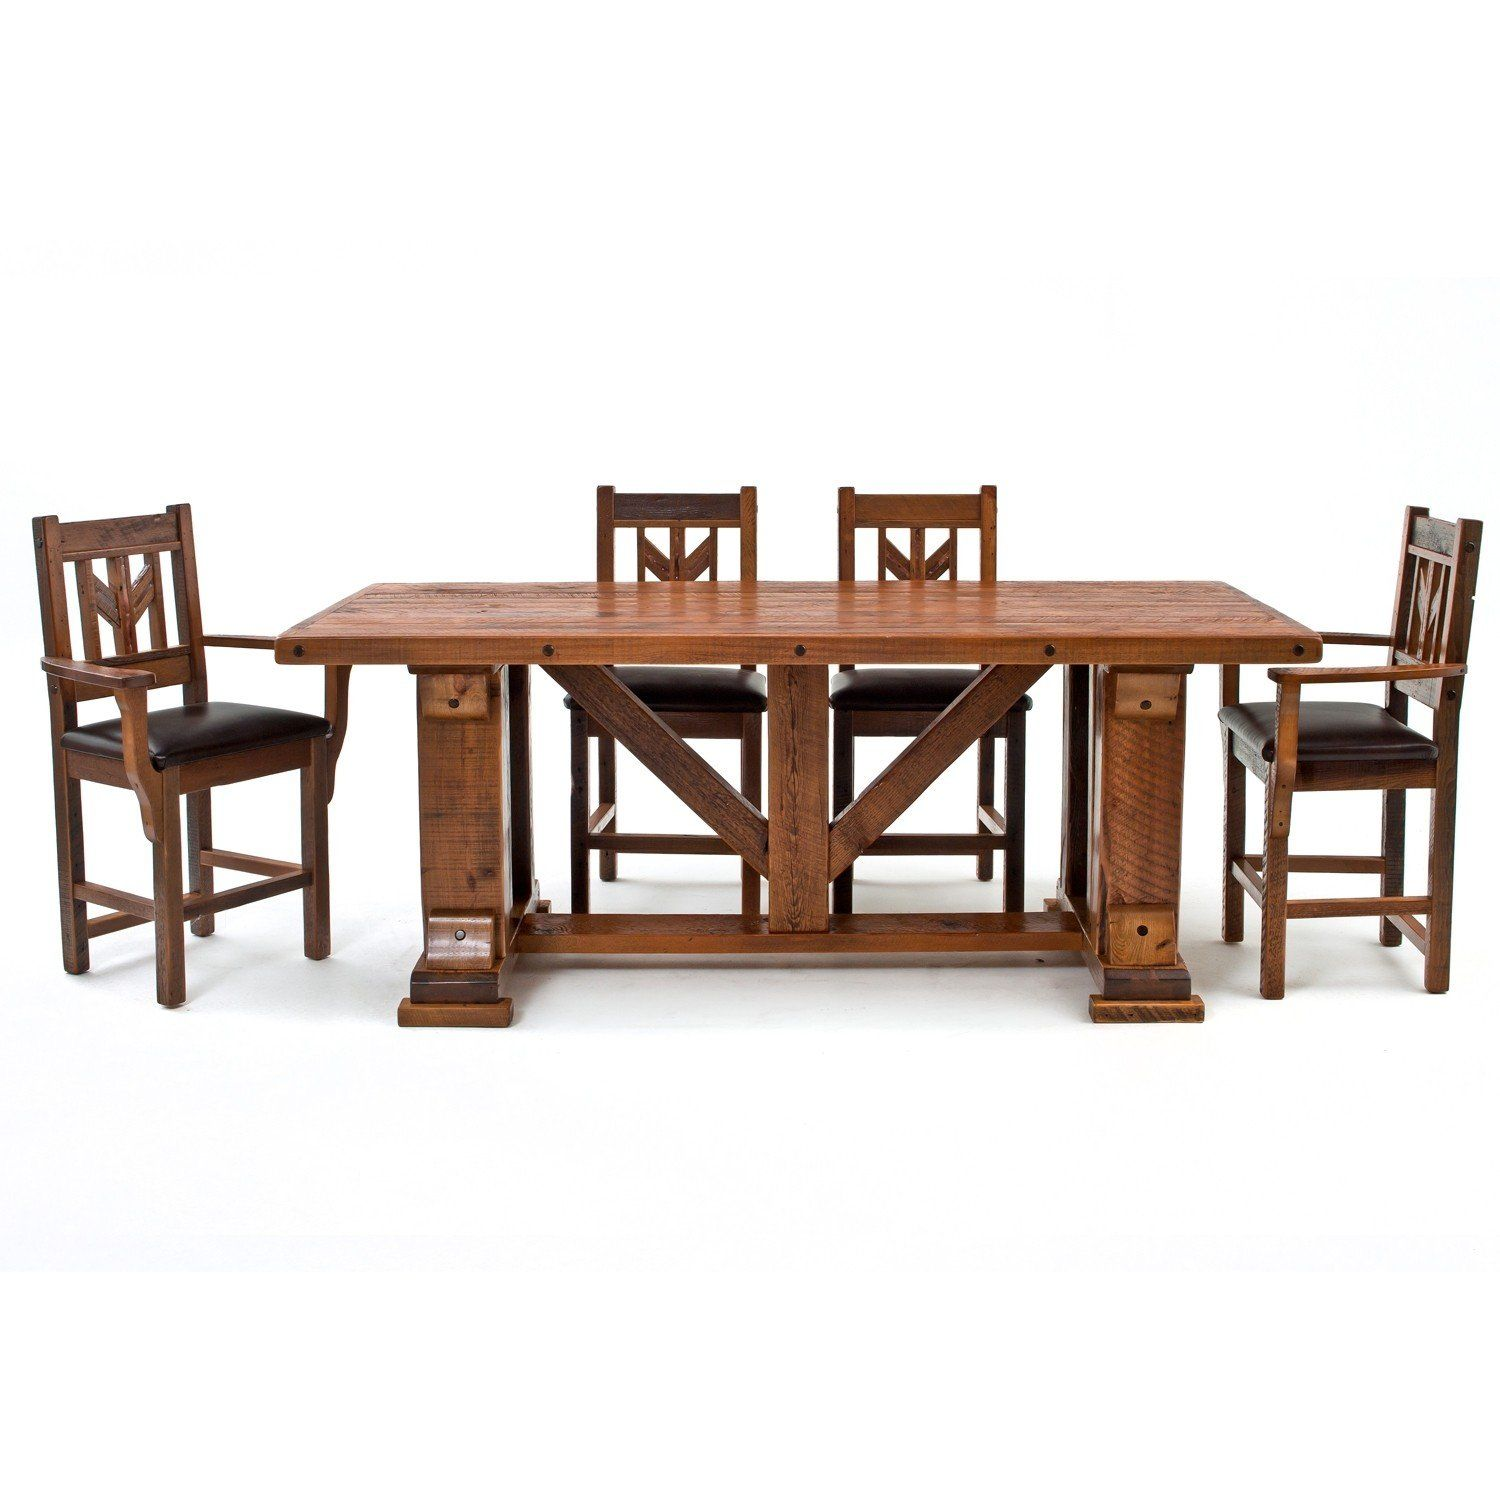 Timber Frame Farmhouse Dining Table Furniture Ideas In 2019